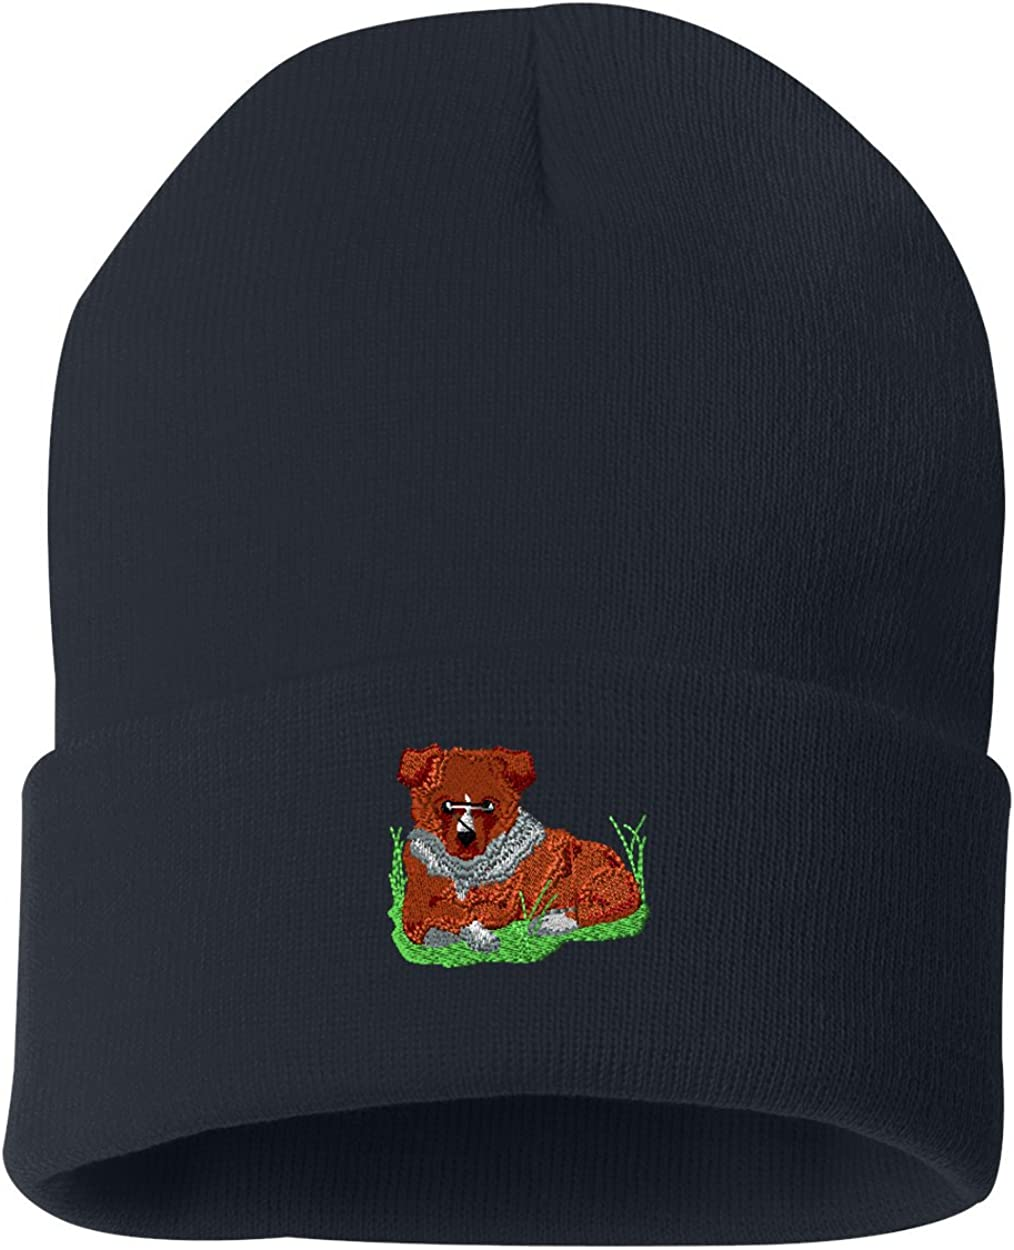 Shetland Sheepdog Custom Personalized Embroidery Embroidered Beanie